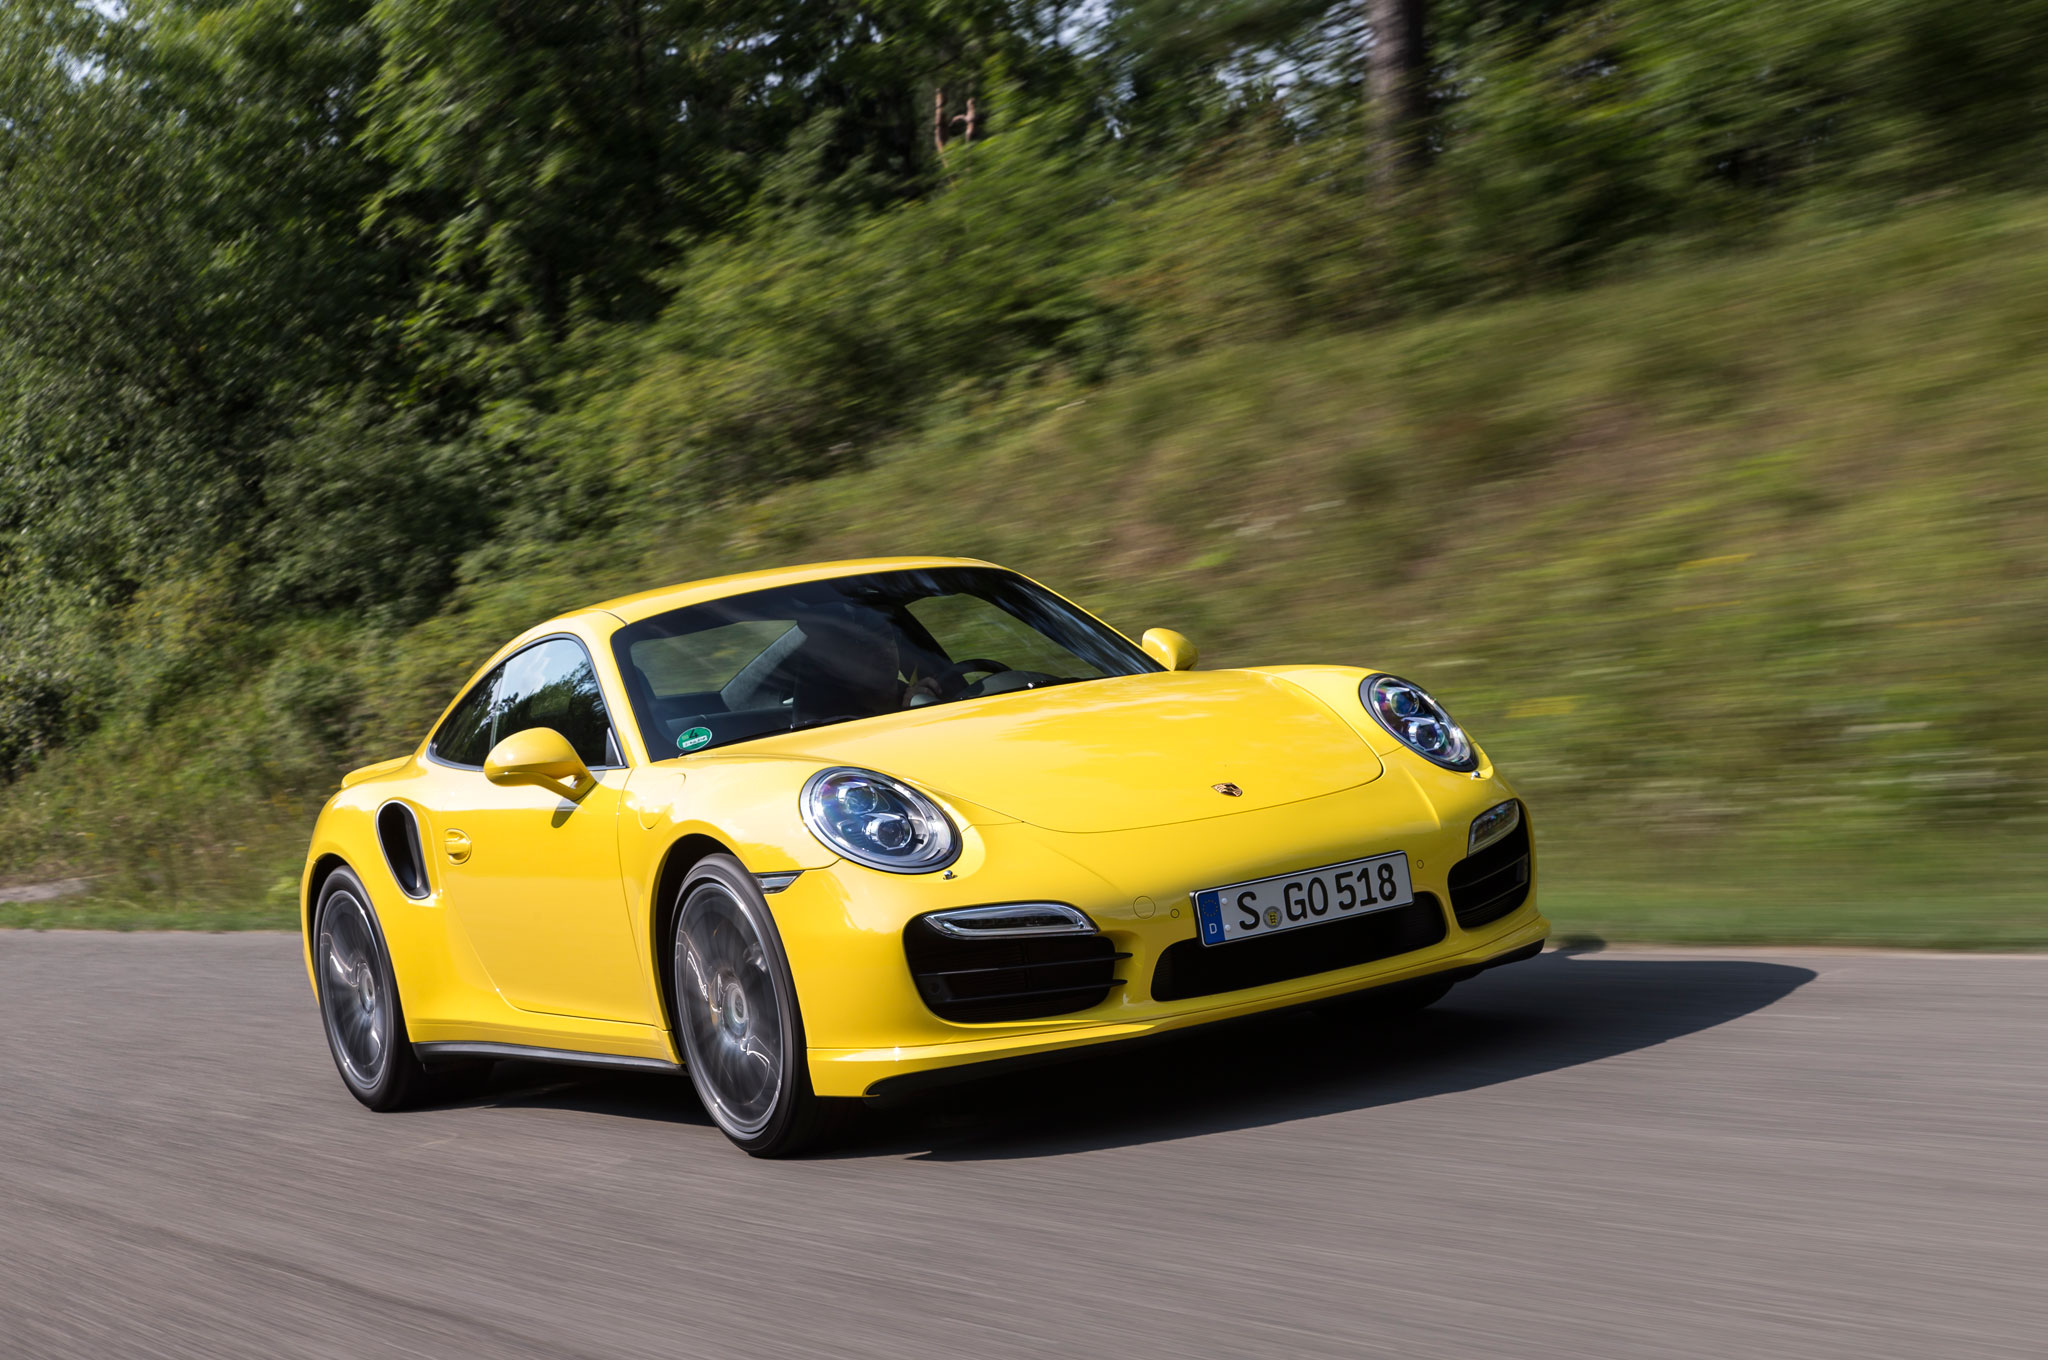 2014 Porsche 911 Turbo Front Right View1